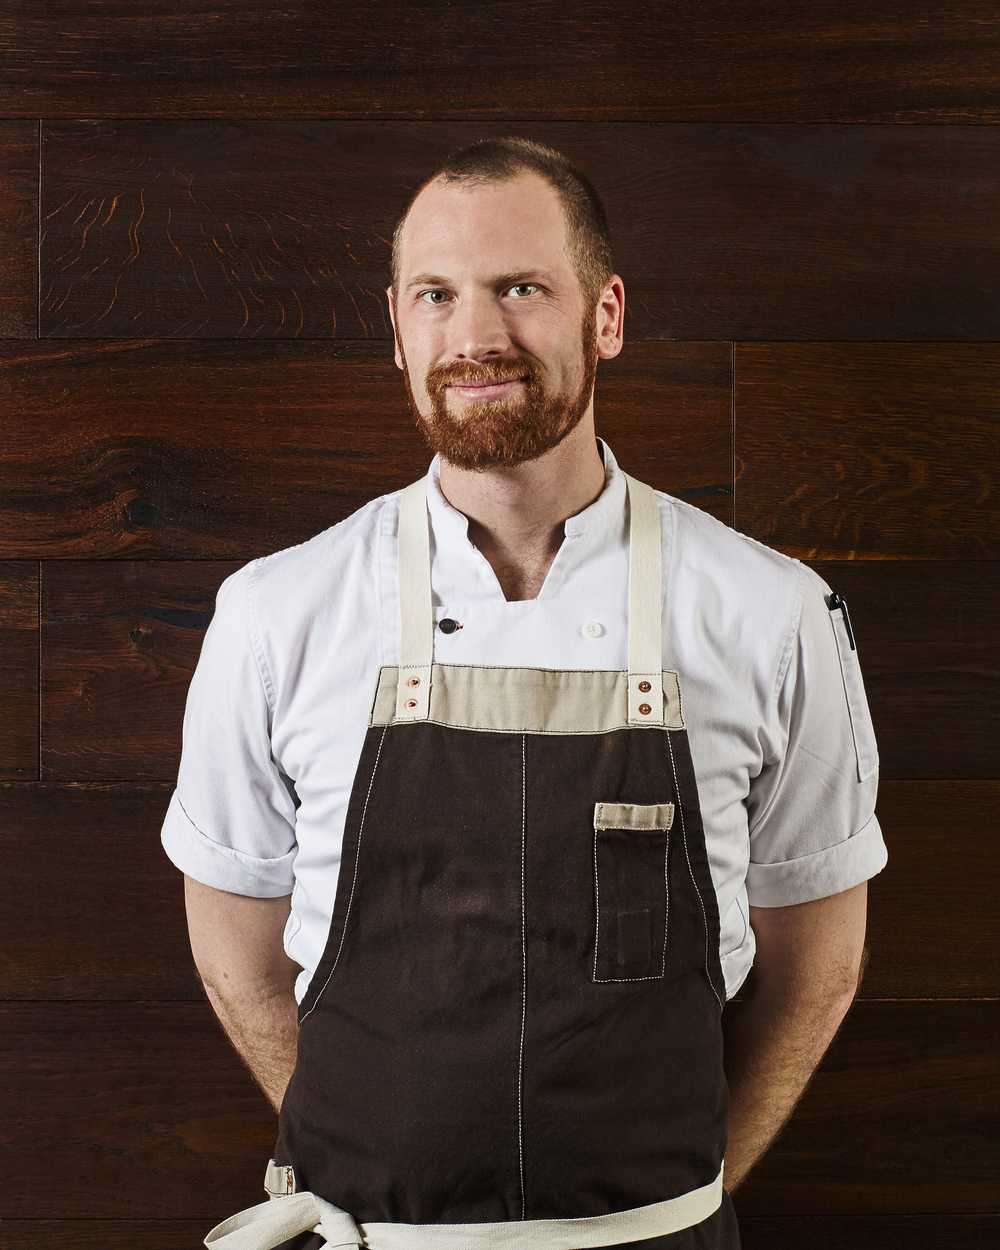 Executive Chef Kevin Fink, owner of Emmer & Rye  (credit: Hayden Spears)